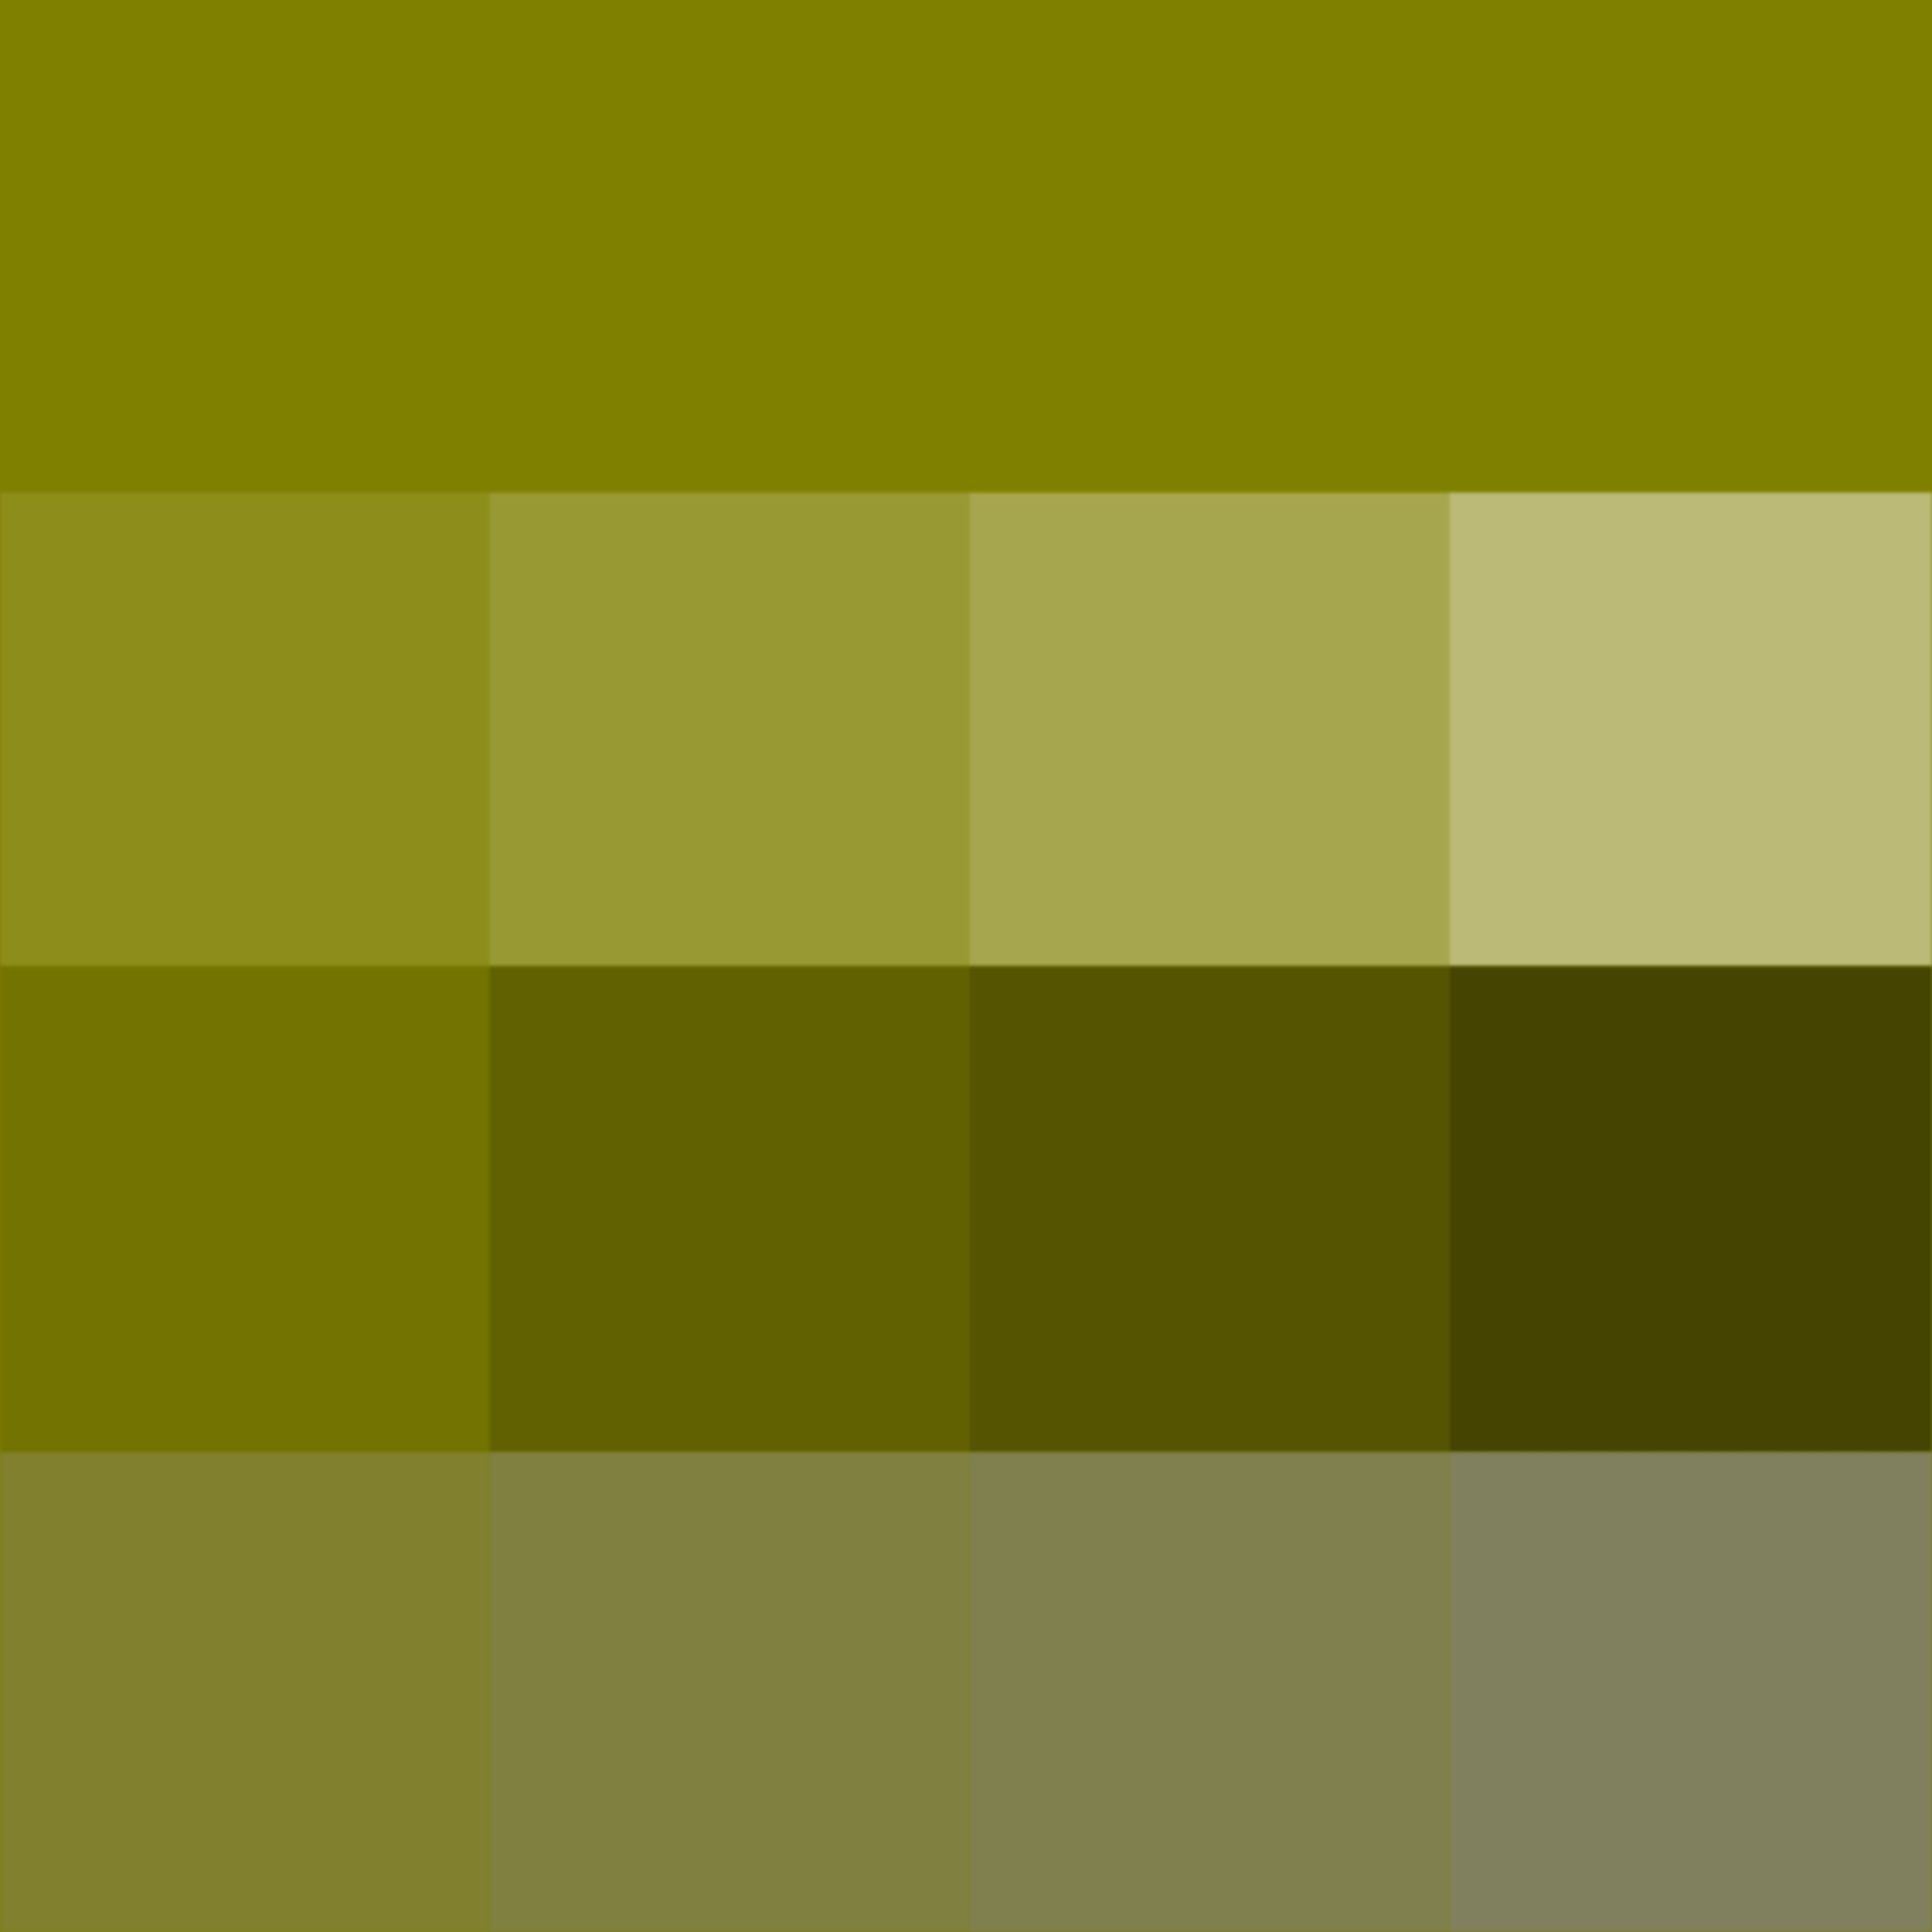 Olive Color Shades Of Green Khaki Soft Autumn